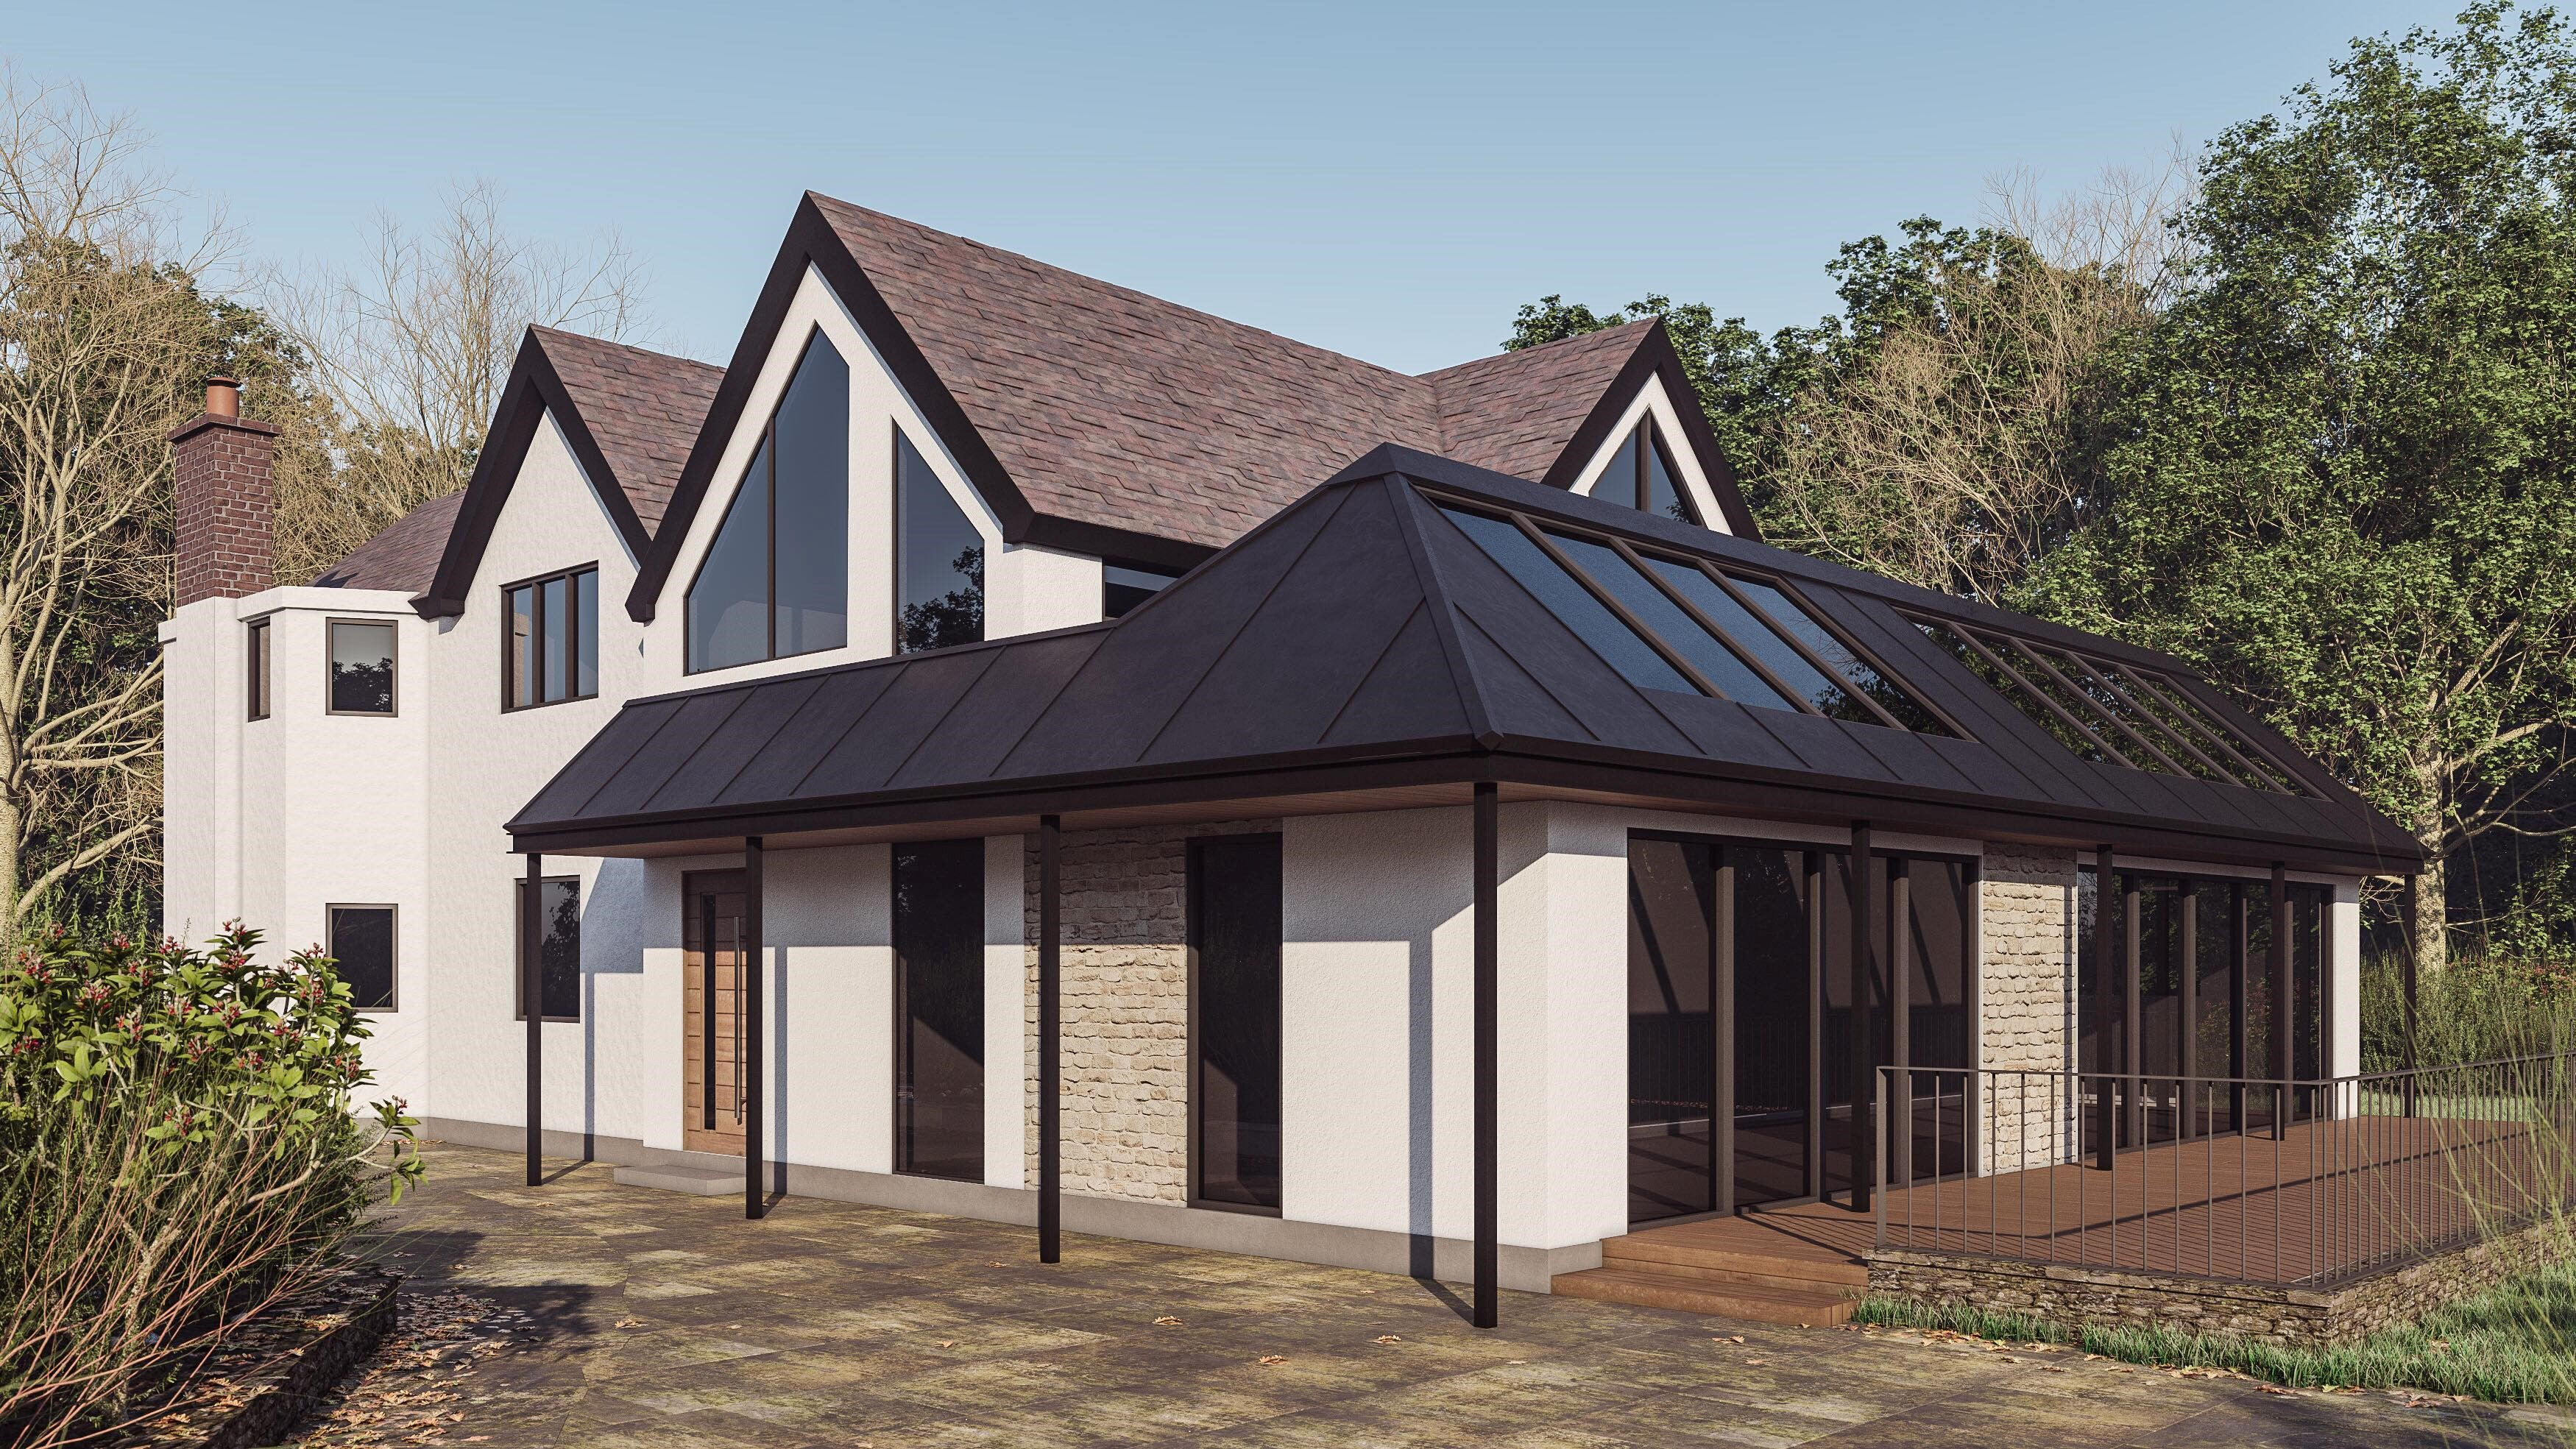 Can I Convert My Single Storey Extension To A Two-Storey Extension